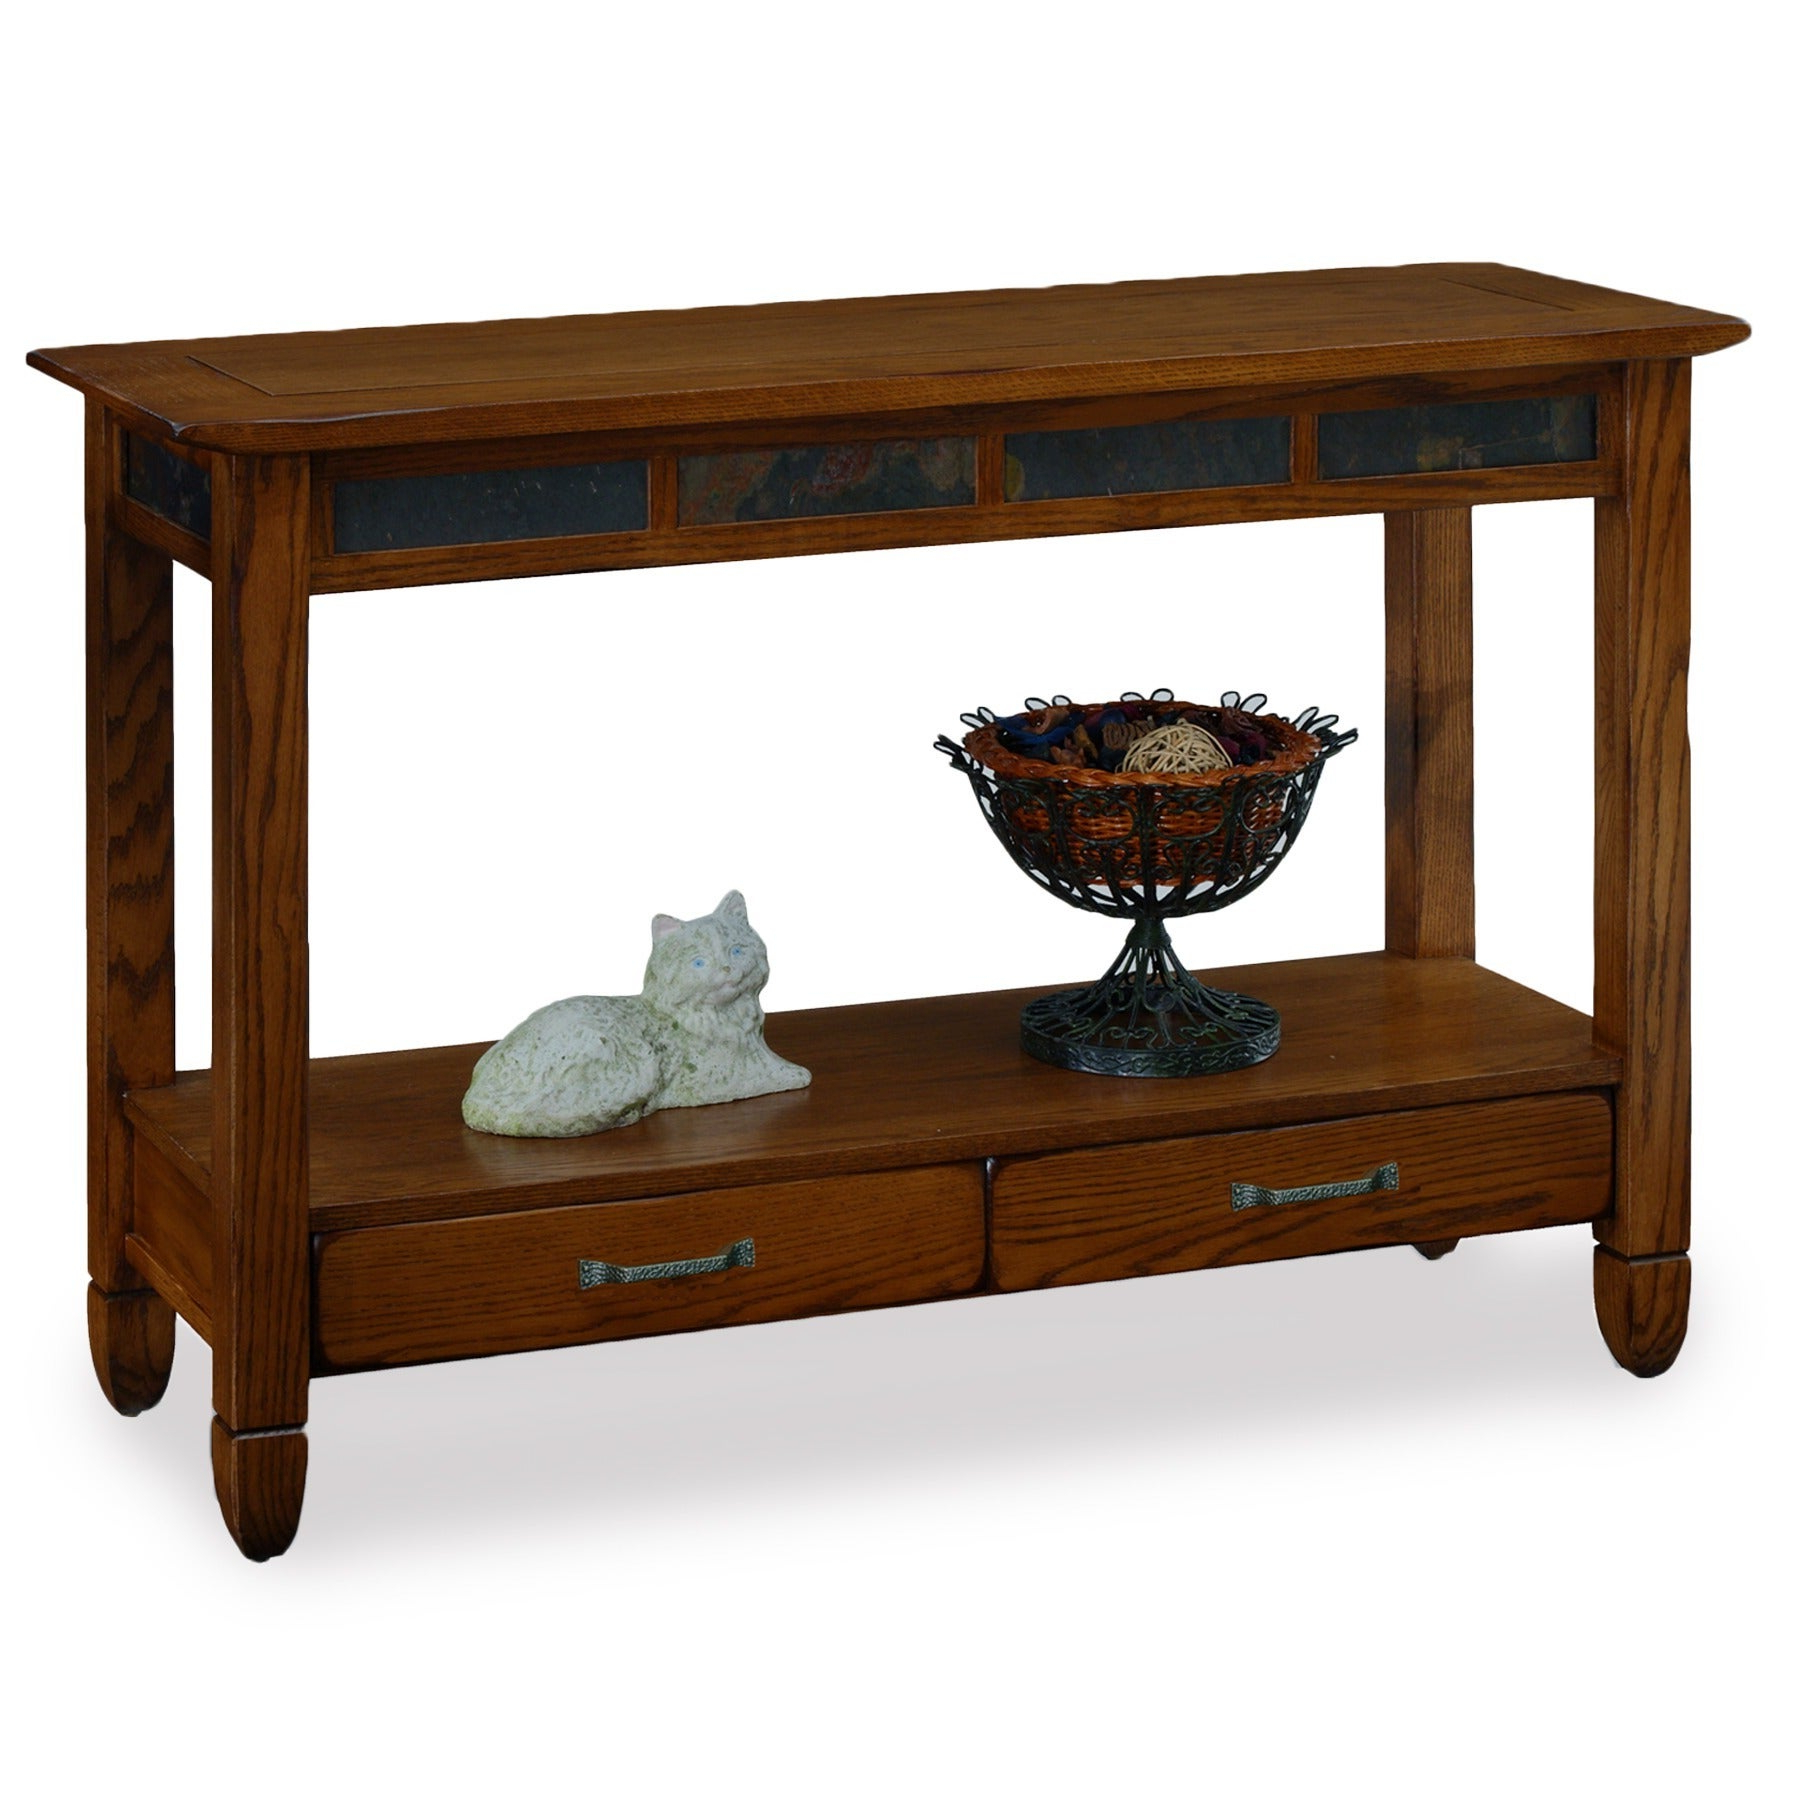 Rustic Oak And Slate Tile Sofa Table Within Well Liked Copper Grove Ixia Rustic Oak And Slate Tile Coffee Tables (View 18 of 20)